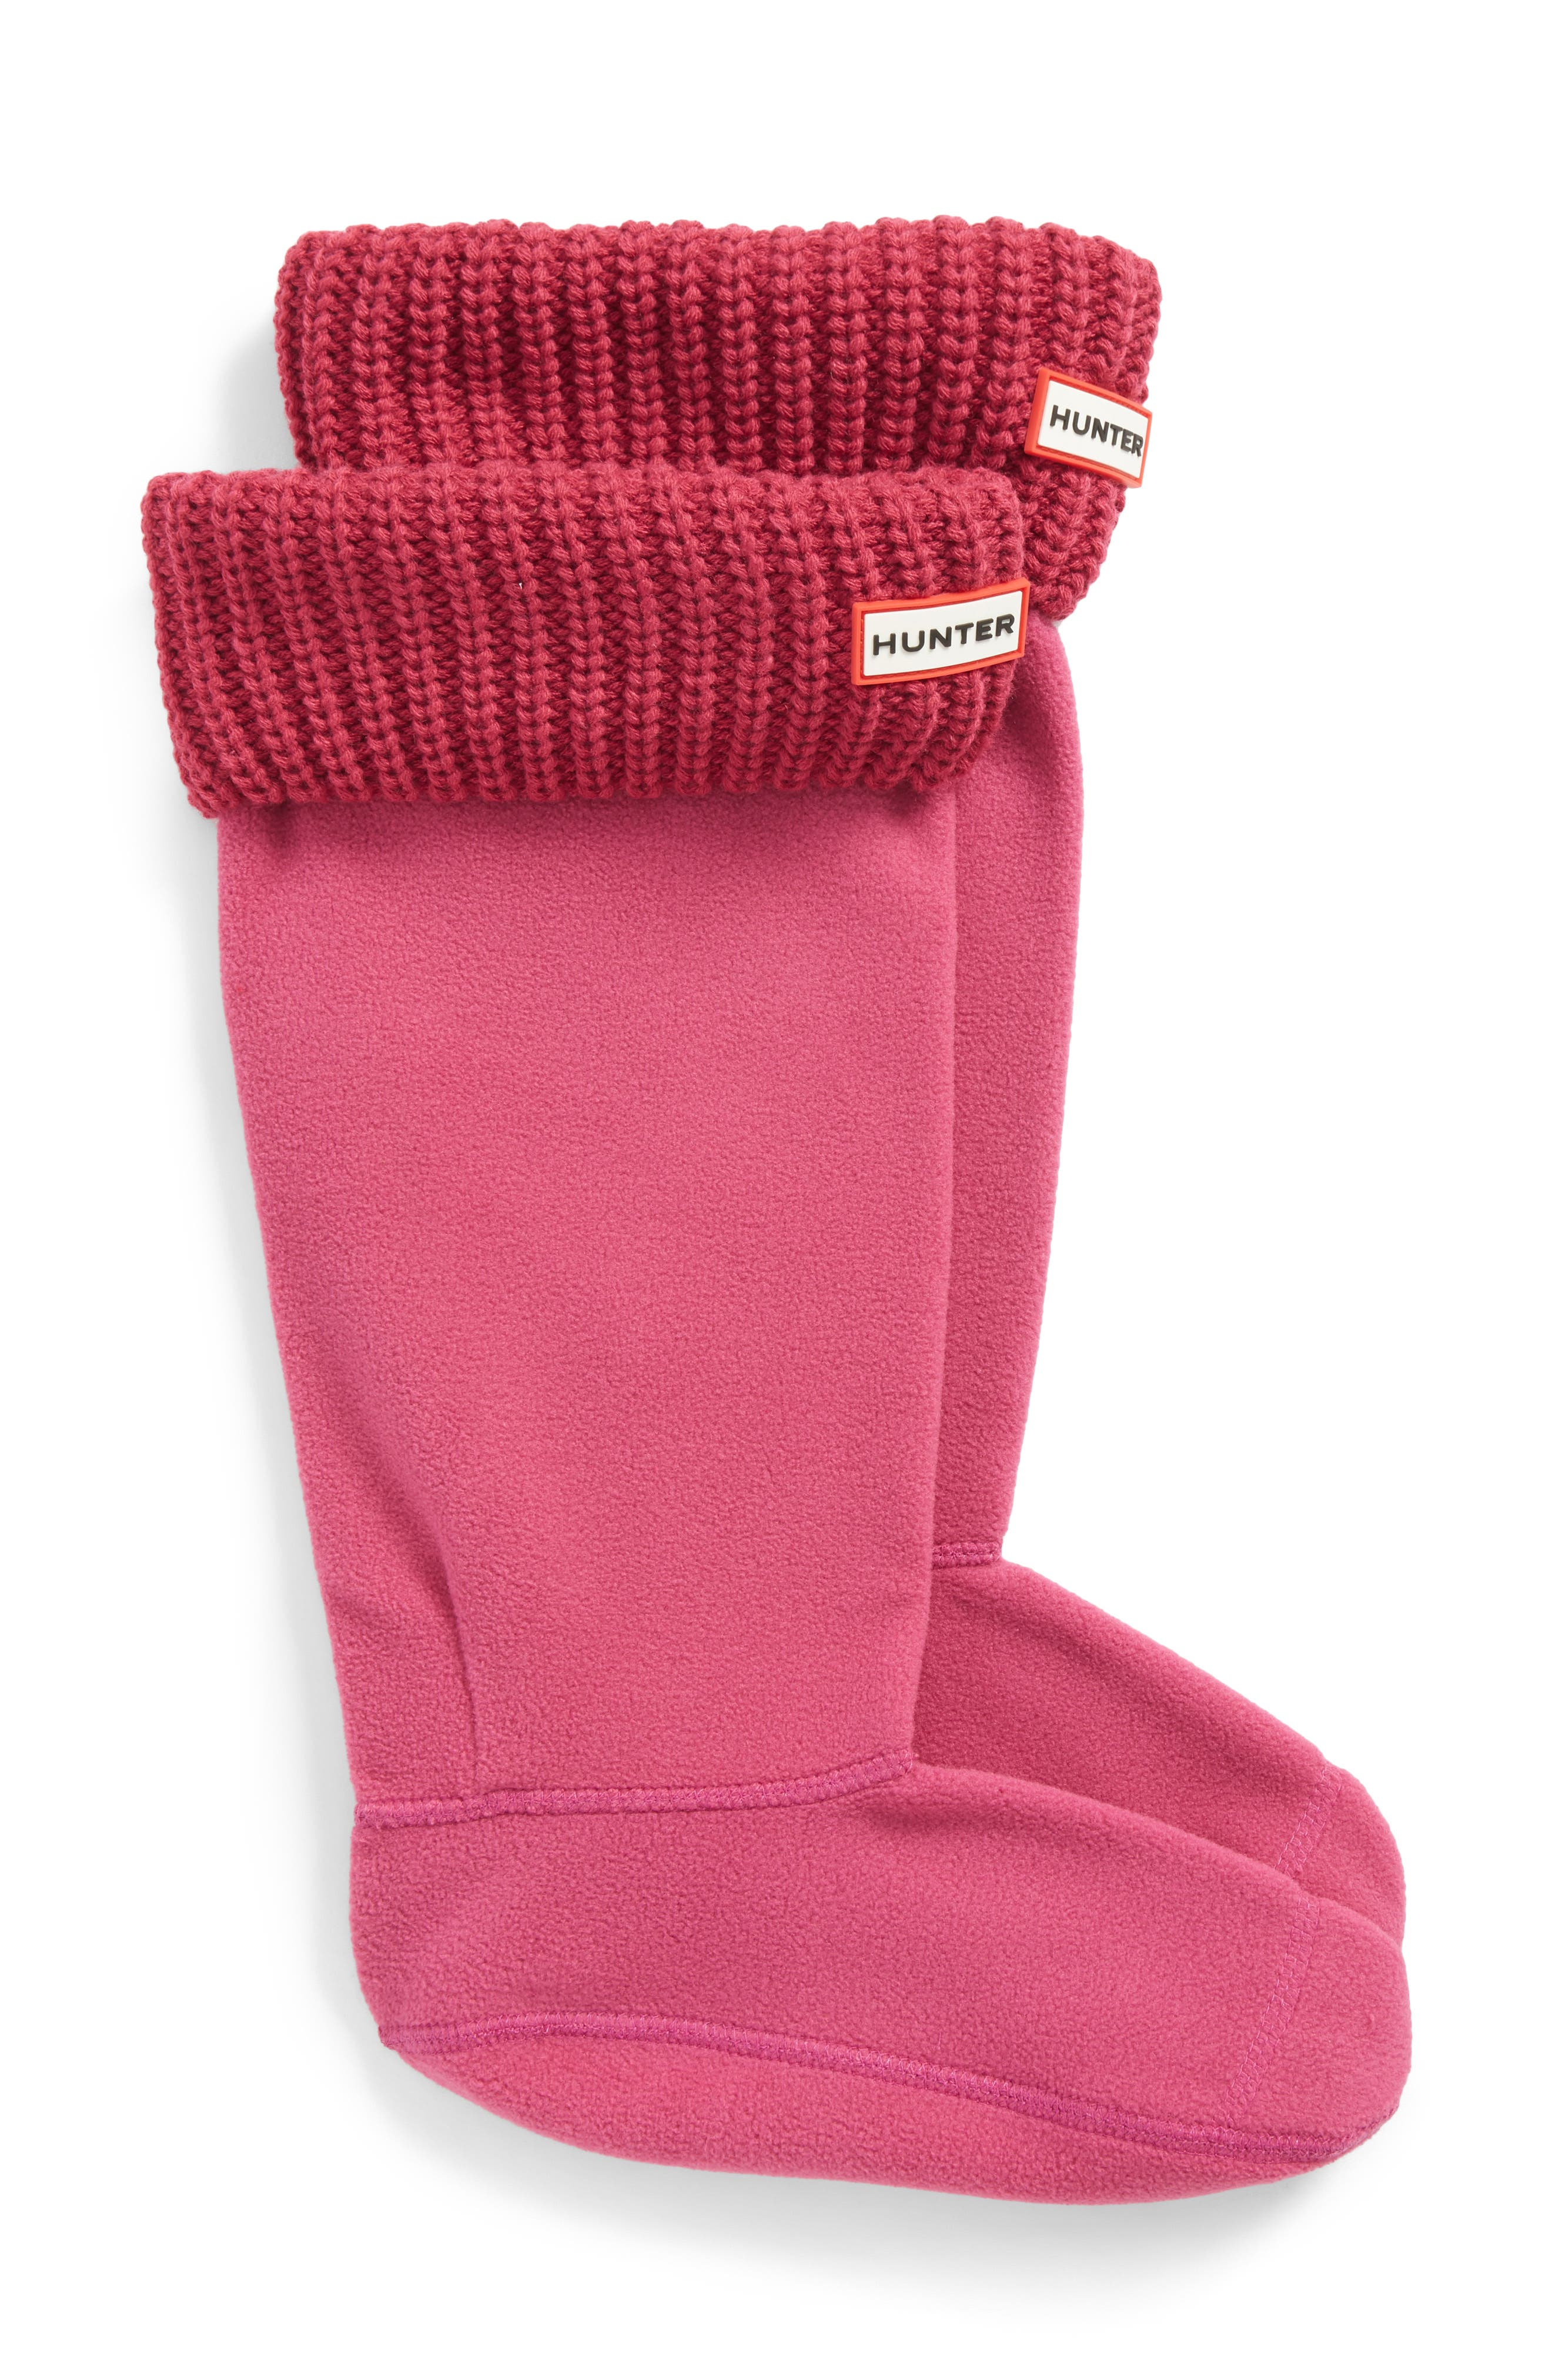 Tall Cardigan Knit Cuff Welly Boot Socks,                         Main,                         color, Dark Ion Pink